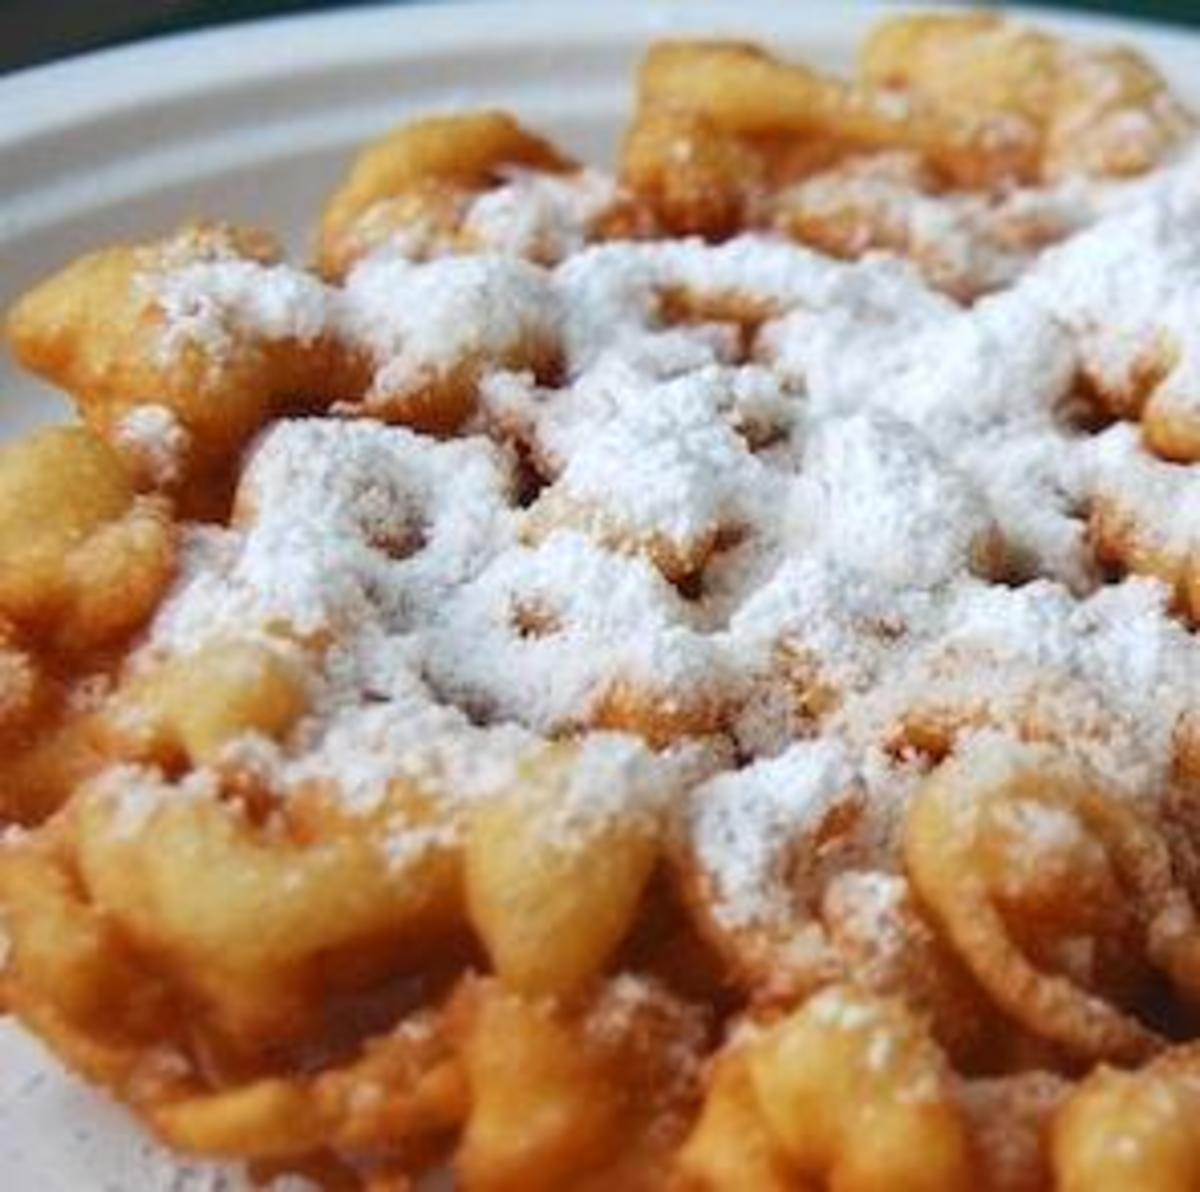 funnel-cakes-an-easy-summer-recipe-that-is-fun-to-make-with-kids